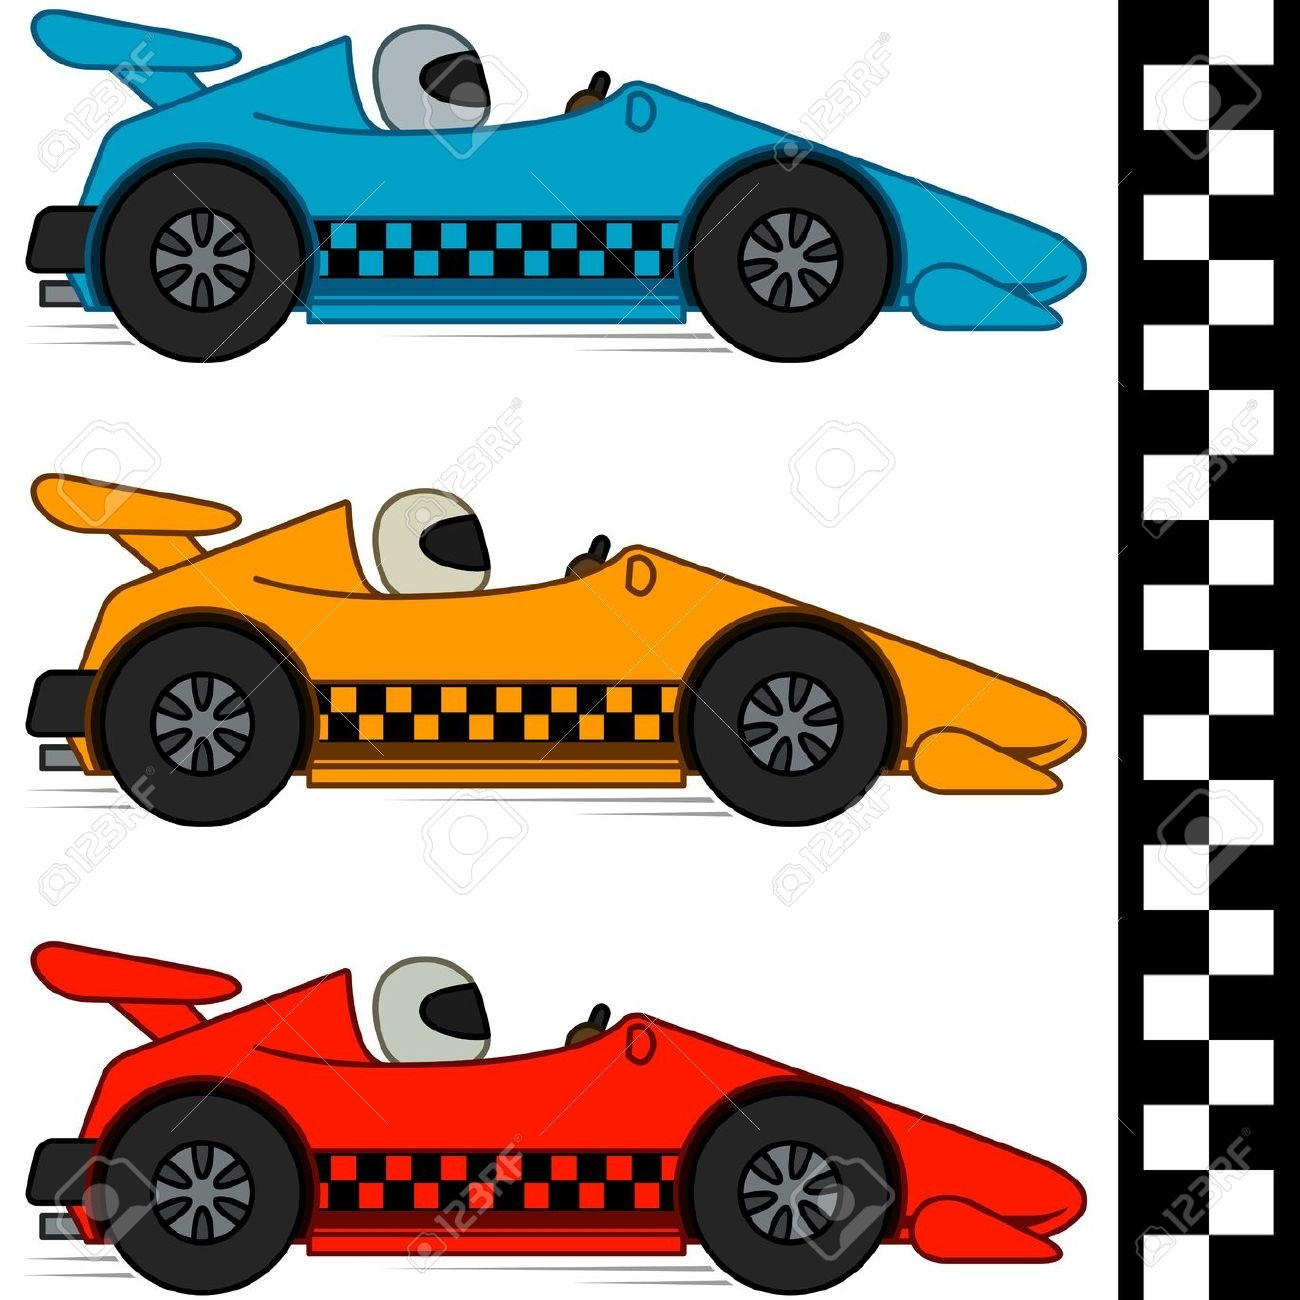 1300x1300 Race Car Images Clip Art Race Car Clipart For Kids Free Images 7